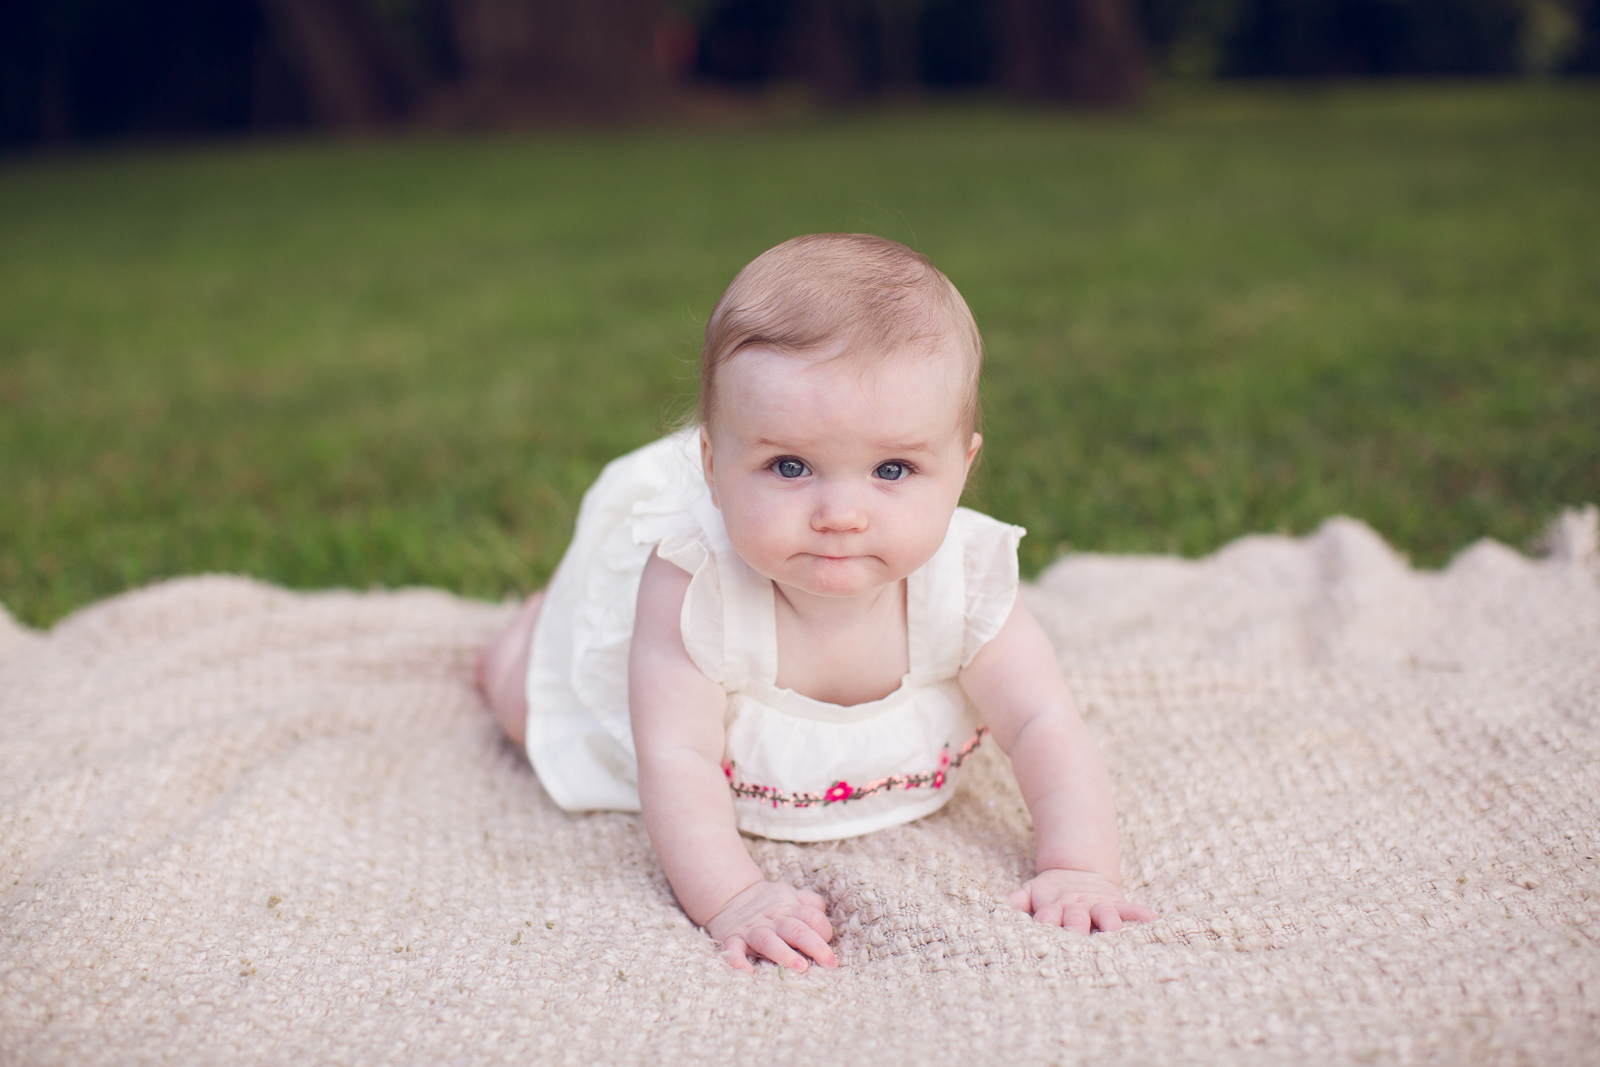 Hattie 6 month photographer lafayette indiana milestone photographer-15.jpg